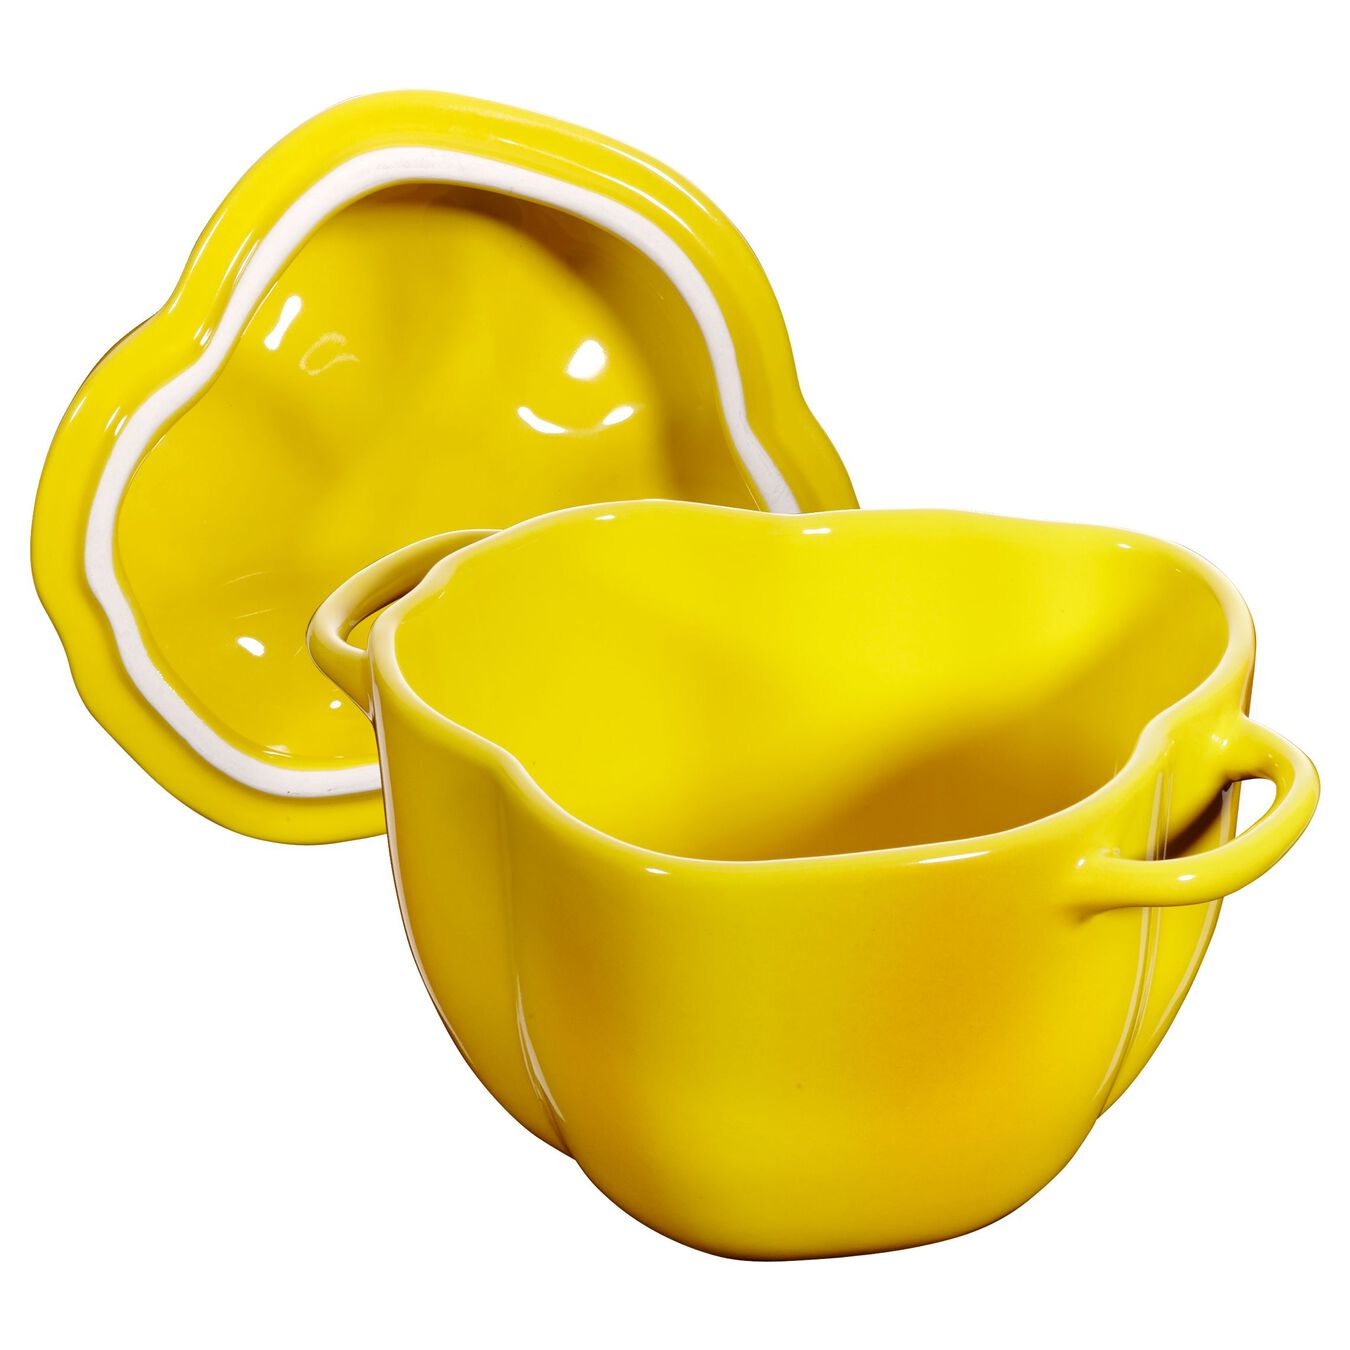 450 ml Ceramic pepper Cocotte, Yellow,,large 4